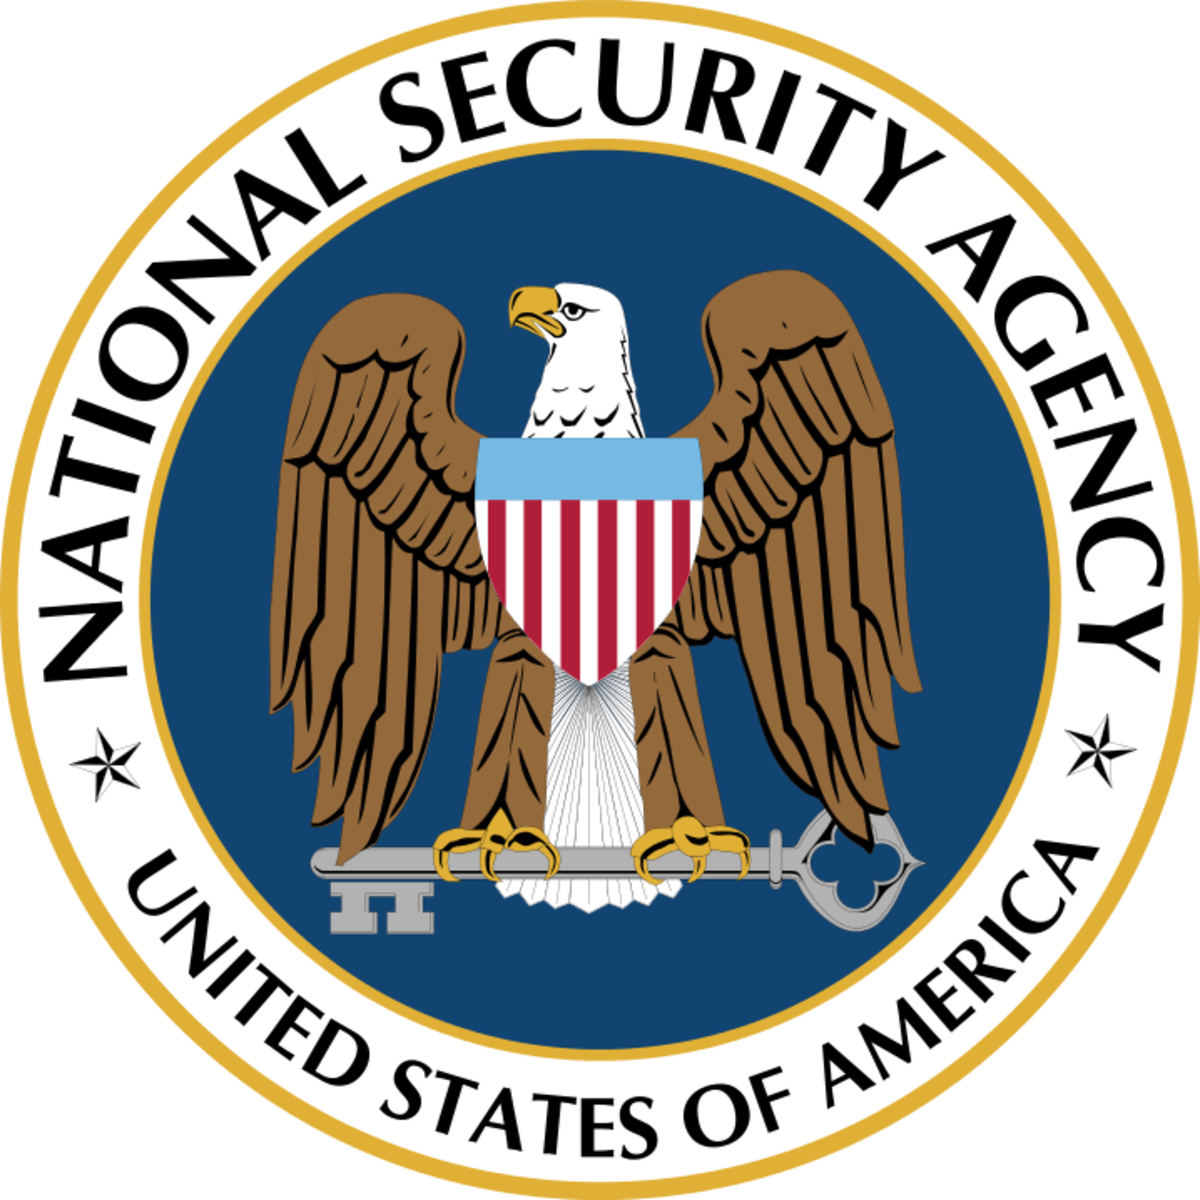 The logo for the National Security Agency (NSA).